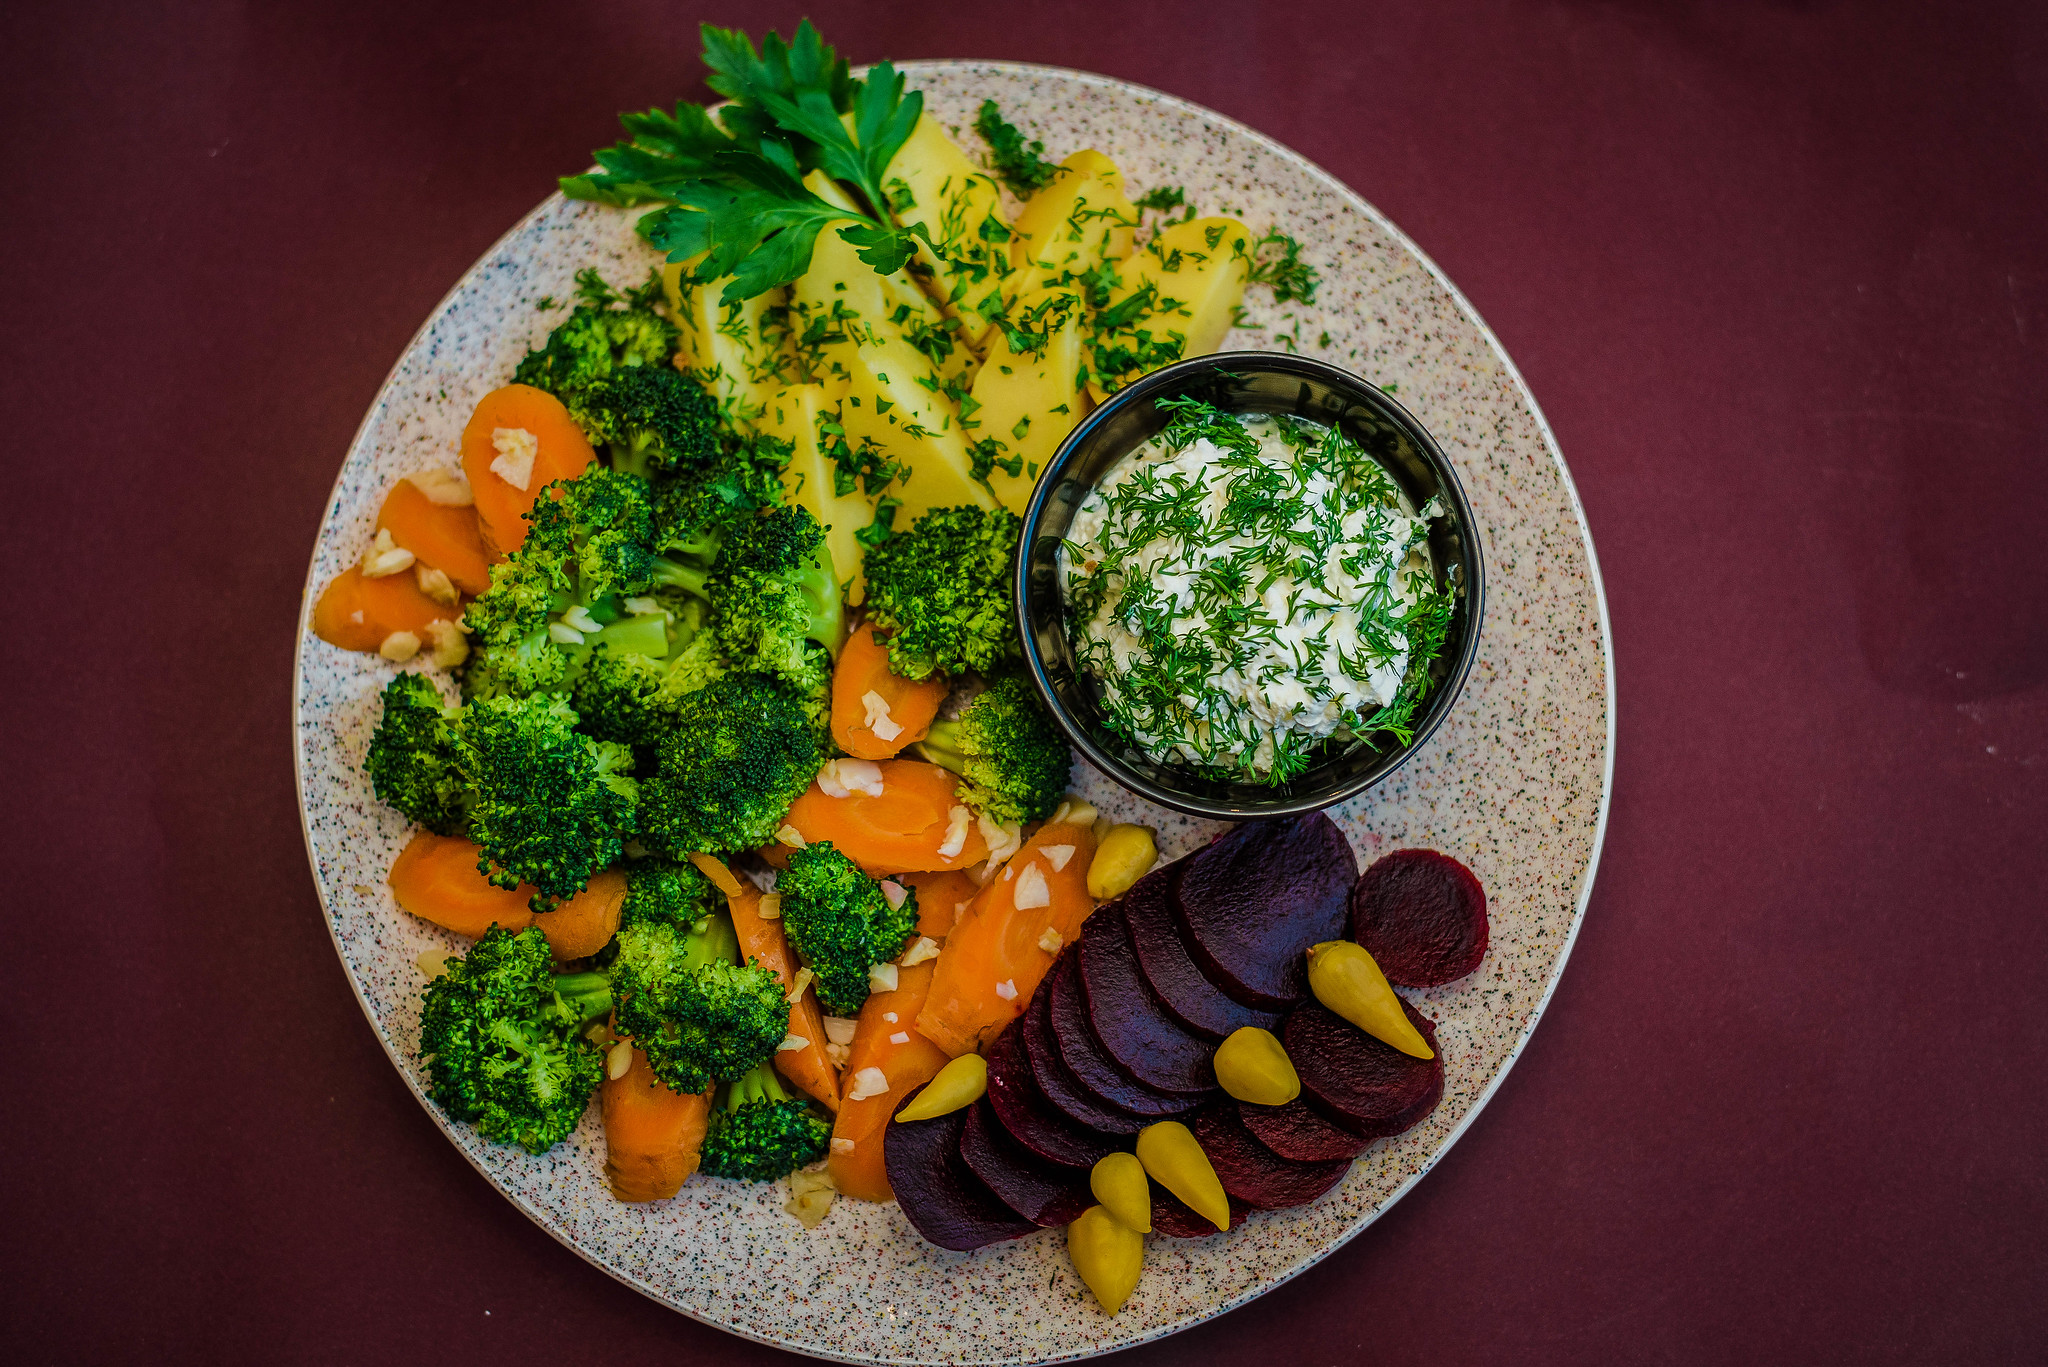 Anthony Bourdain Atlanta - Vegetable Plate - photo by Marco Verch Professional Photographer and Speaker under CC BY 2.0